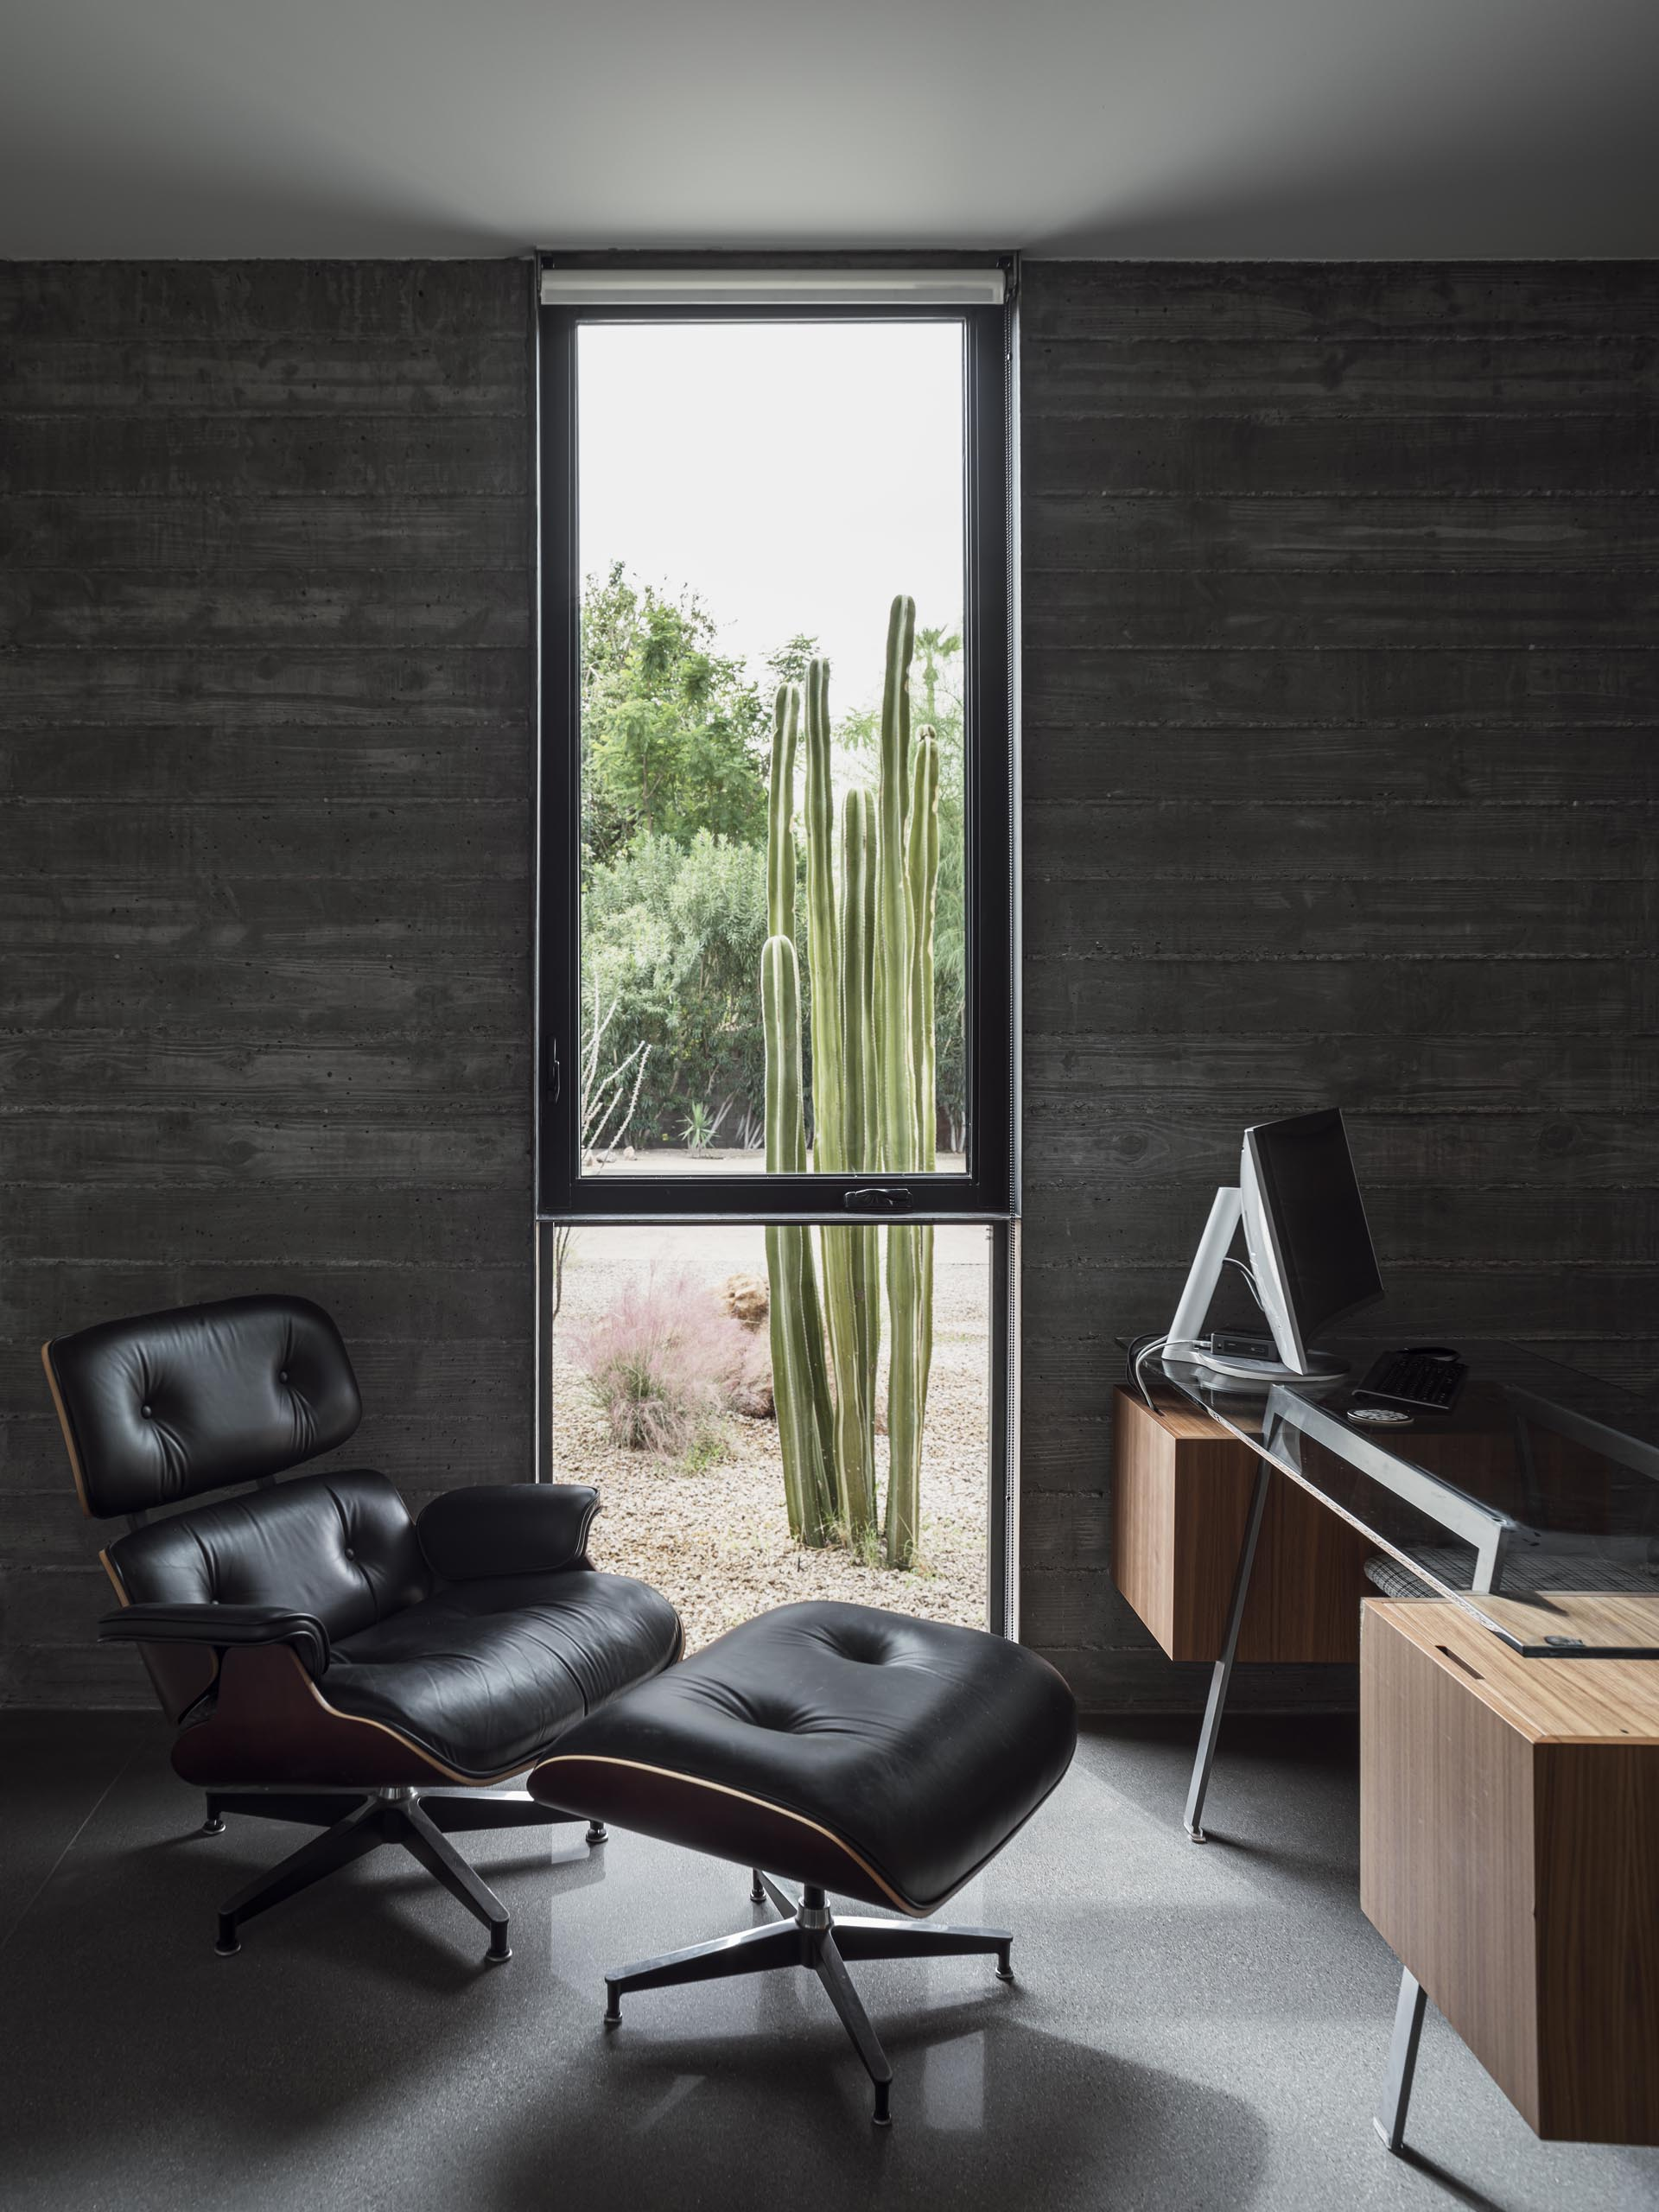 In this home office, the board formed concrete walls are clearly visible, while a floor-to-ceiling window perfectly frames the desert plants outside.